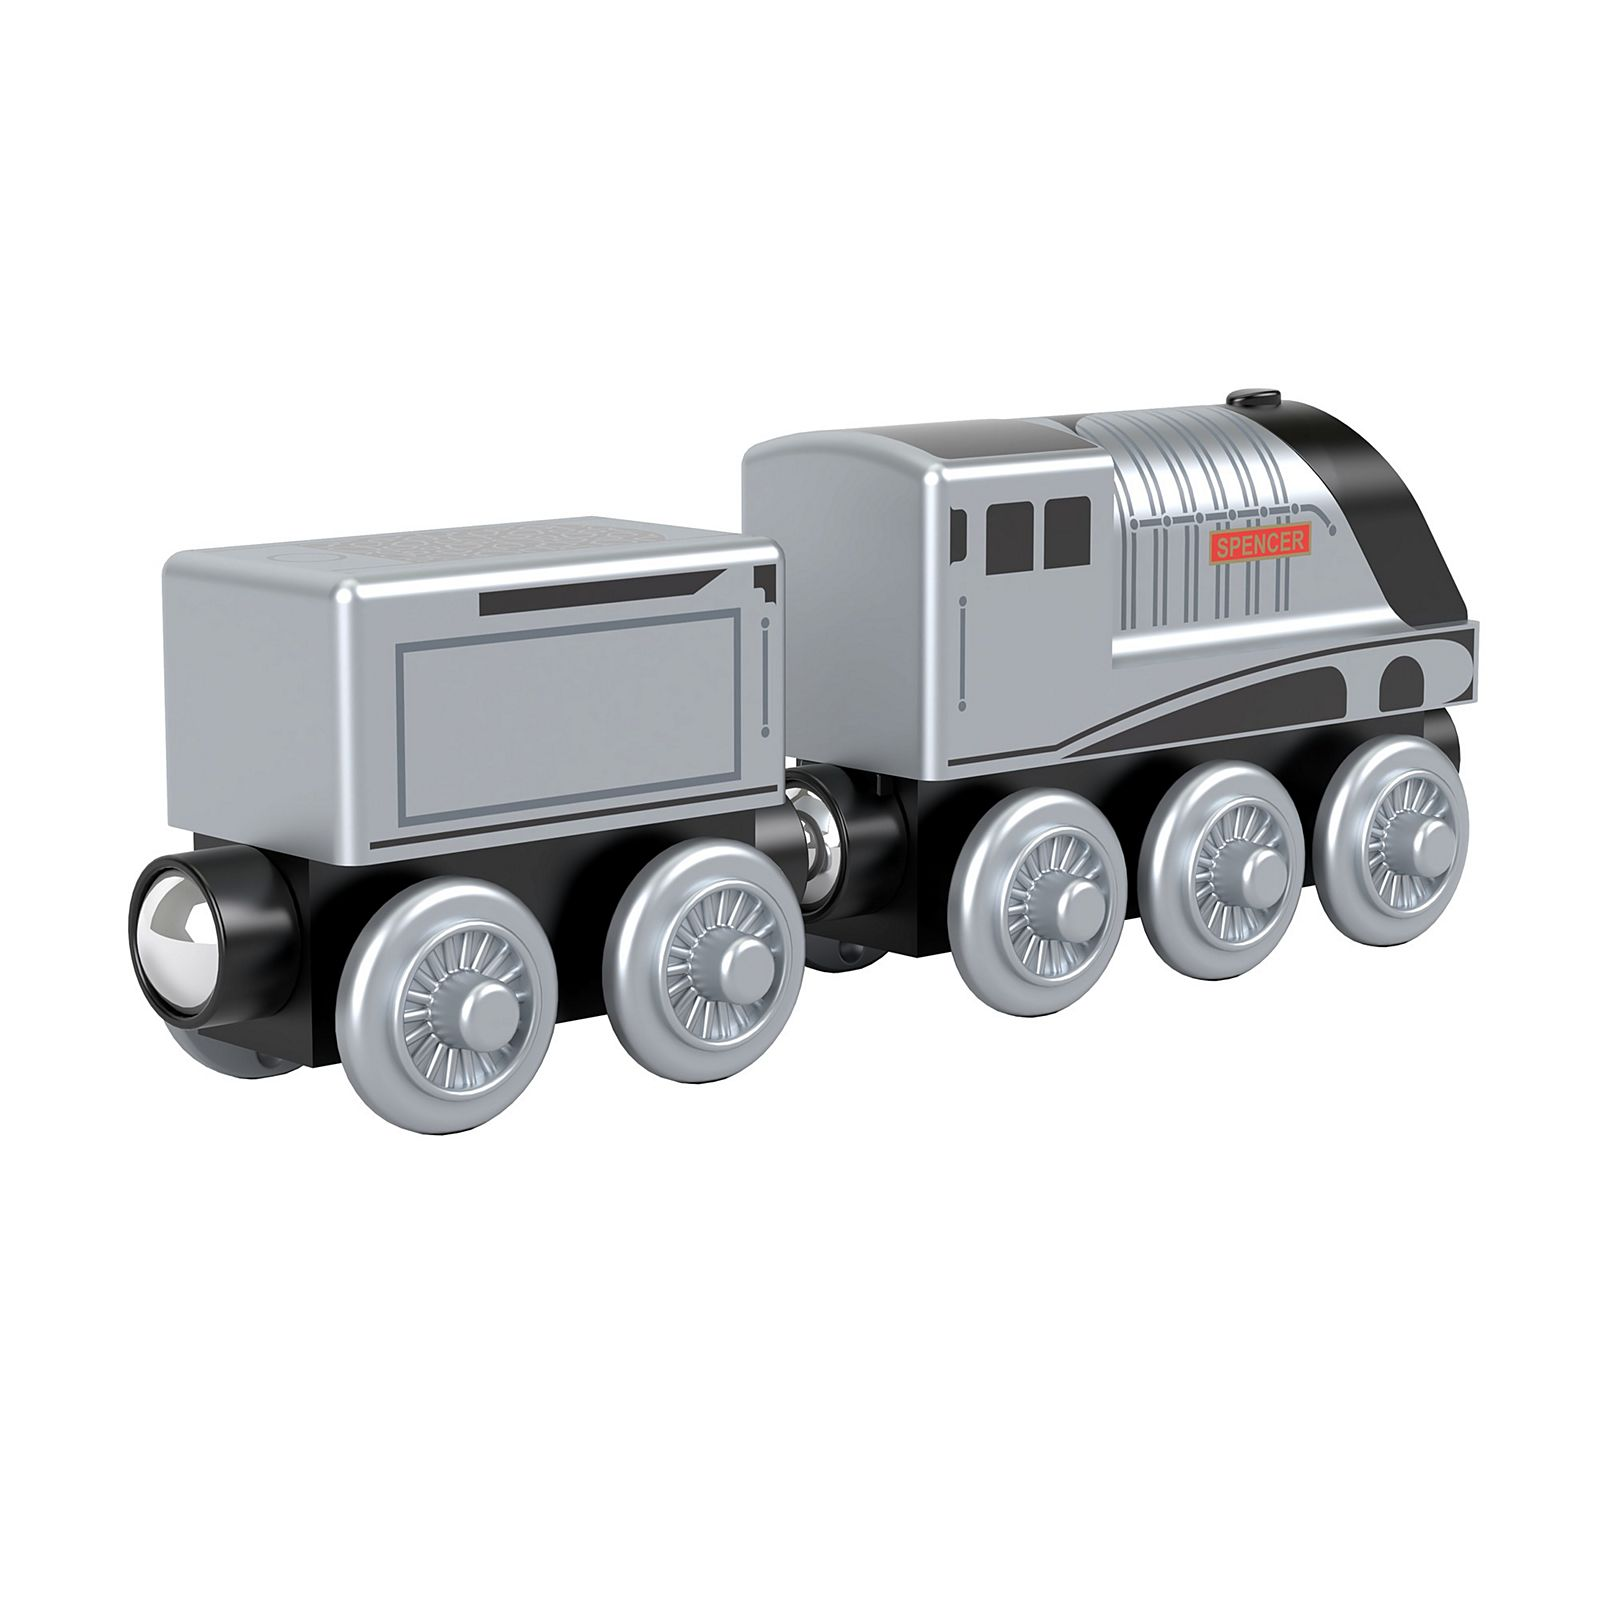 Spencer Thomas /& Friends Wooden Railway Fisher Price GGG68